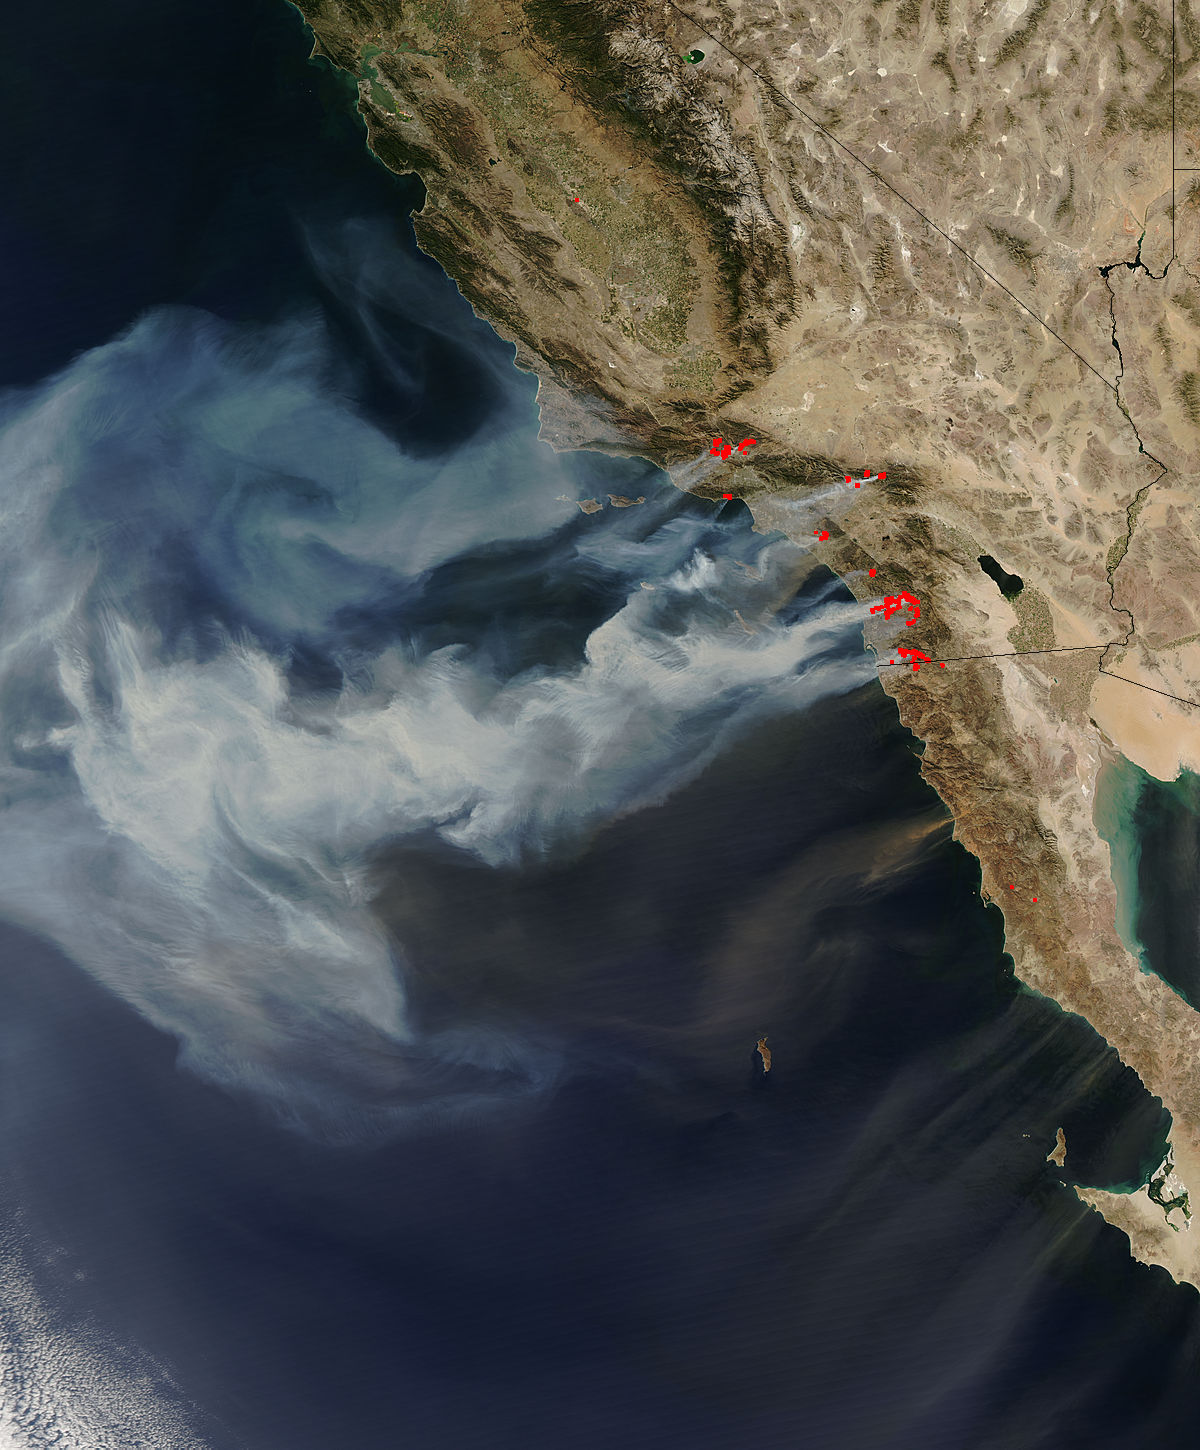 http://www.nasa.gov/images/content/193857main_wildfire_oct22_full.jpg